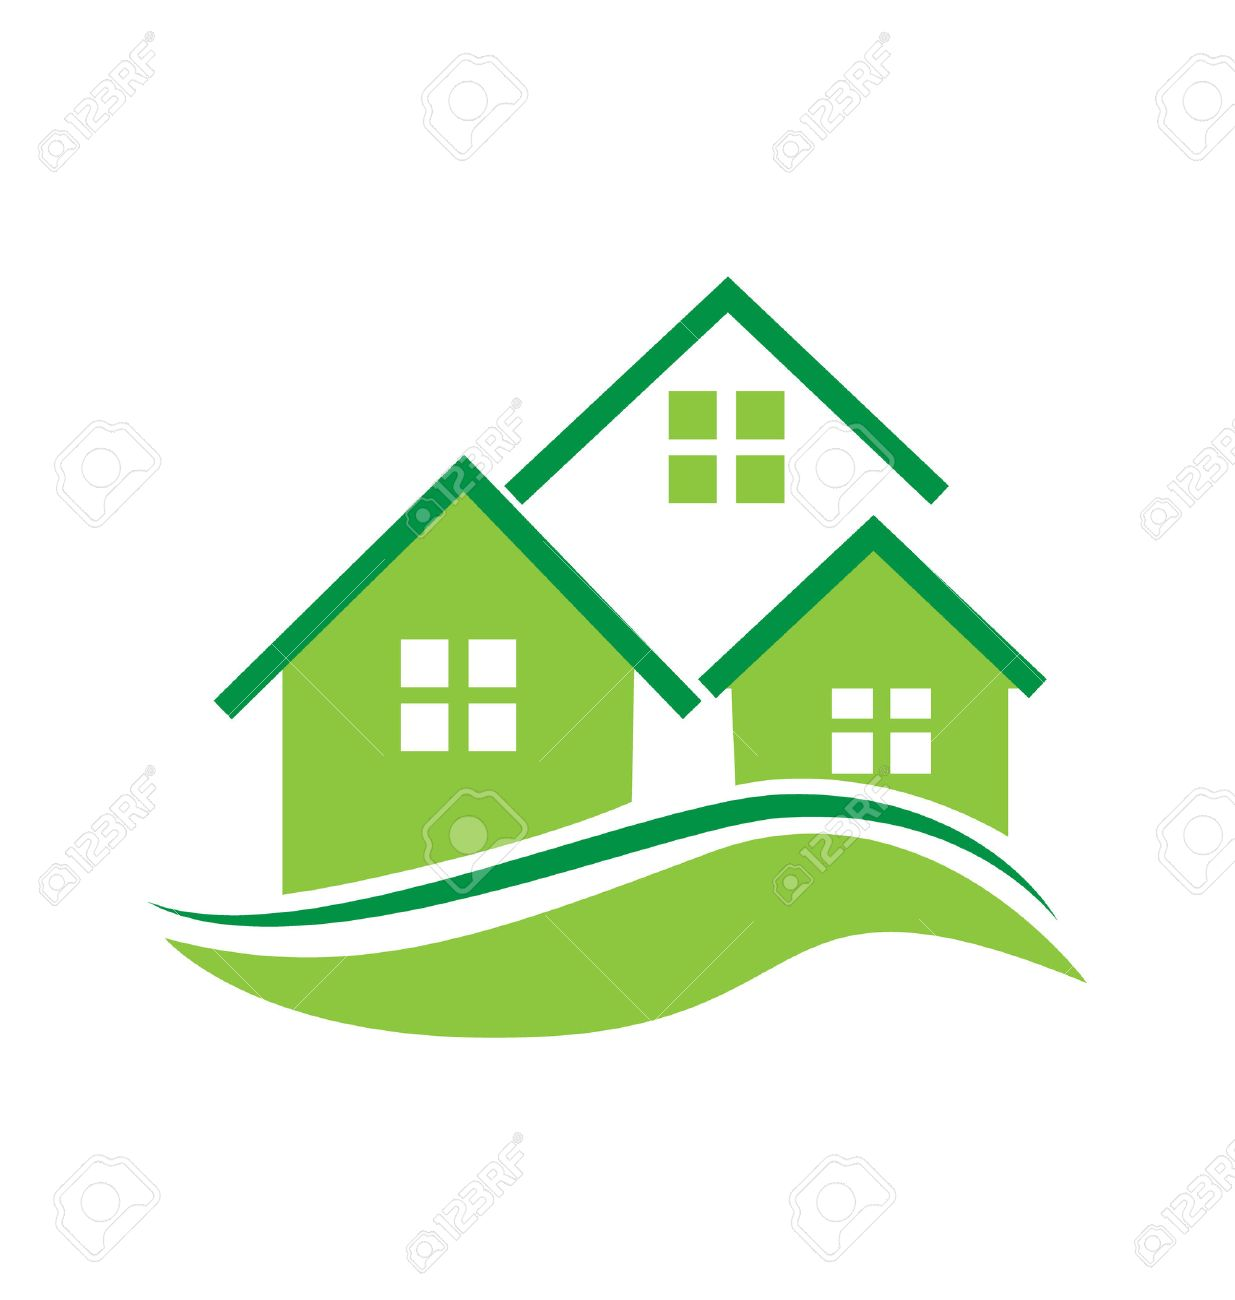 green houses vector icon royalty free cliparts vectors and stock rh 123rf com house vector free house vector black